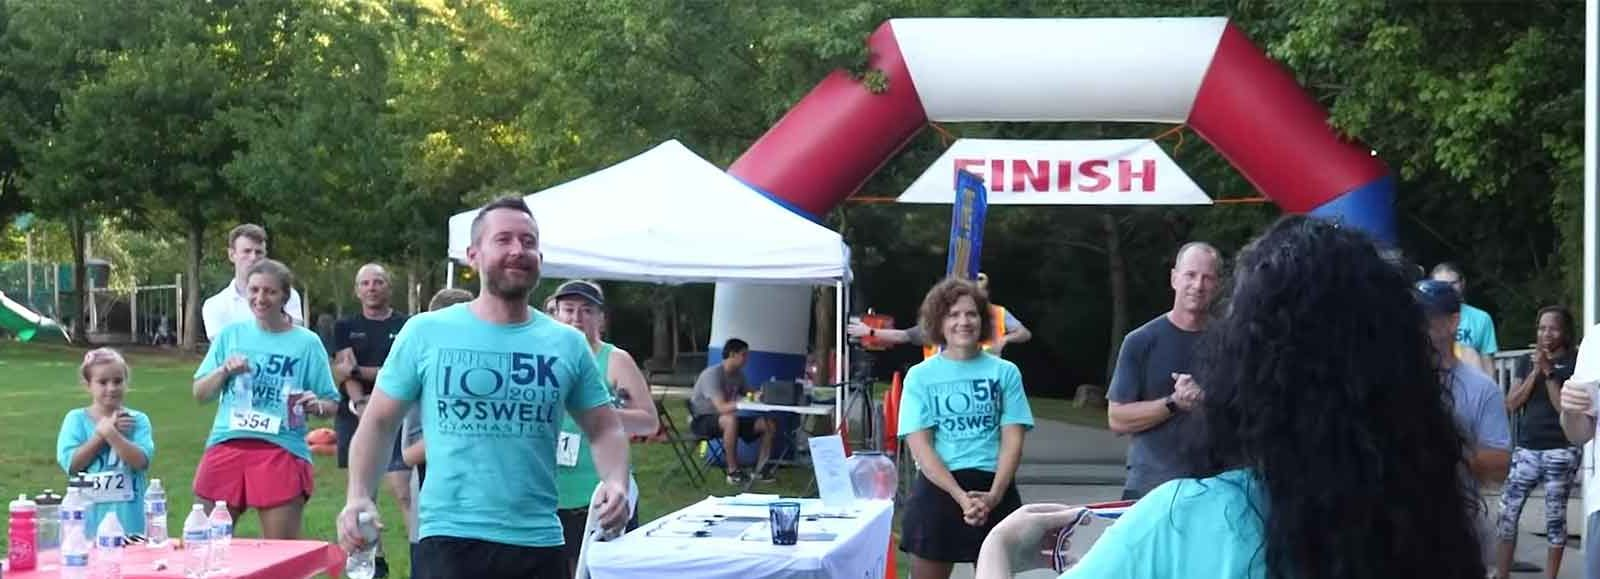 Roswell Gynmastics Perfect 10 5k Banner